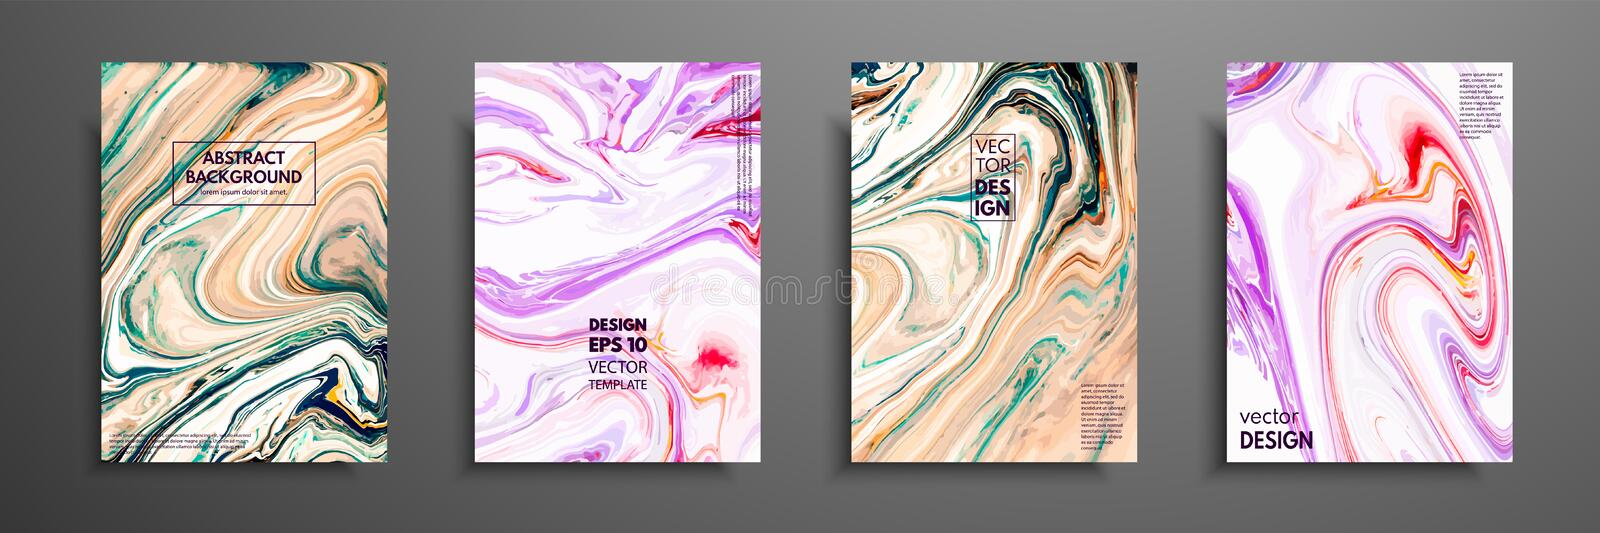 Swirls of marble or the ripples of agate. Liquid marble texture. Fluid art. Applicable for design covers, presentation stock illustration